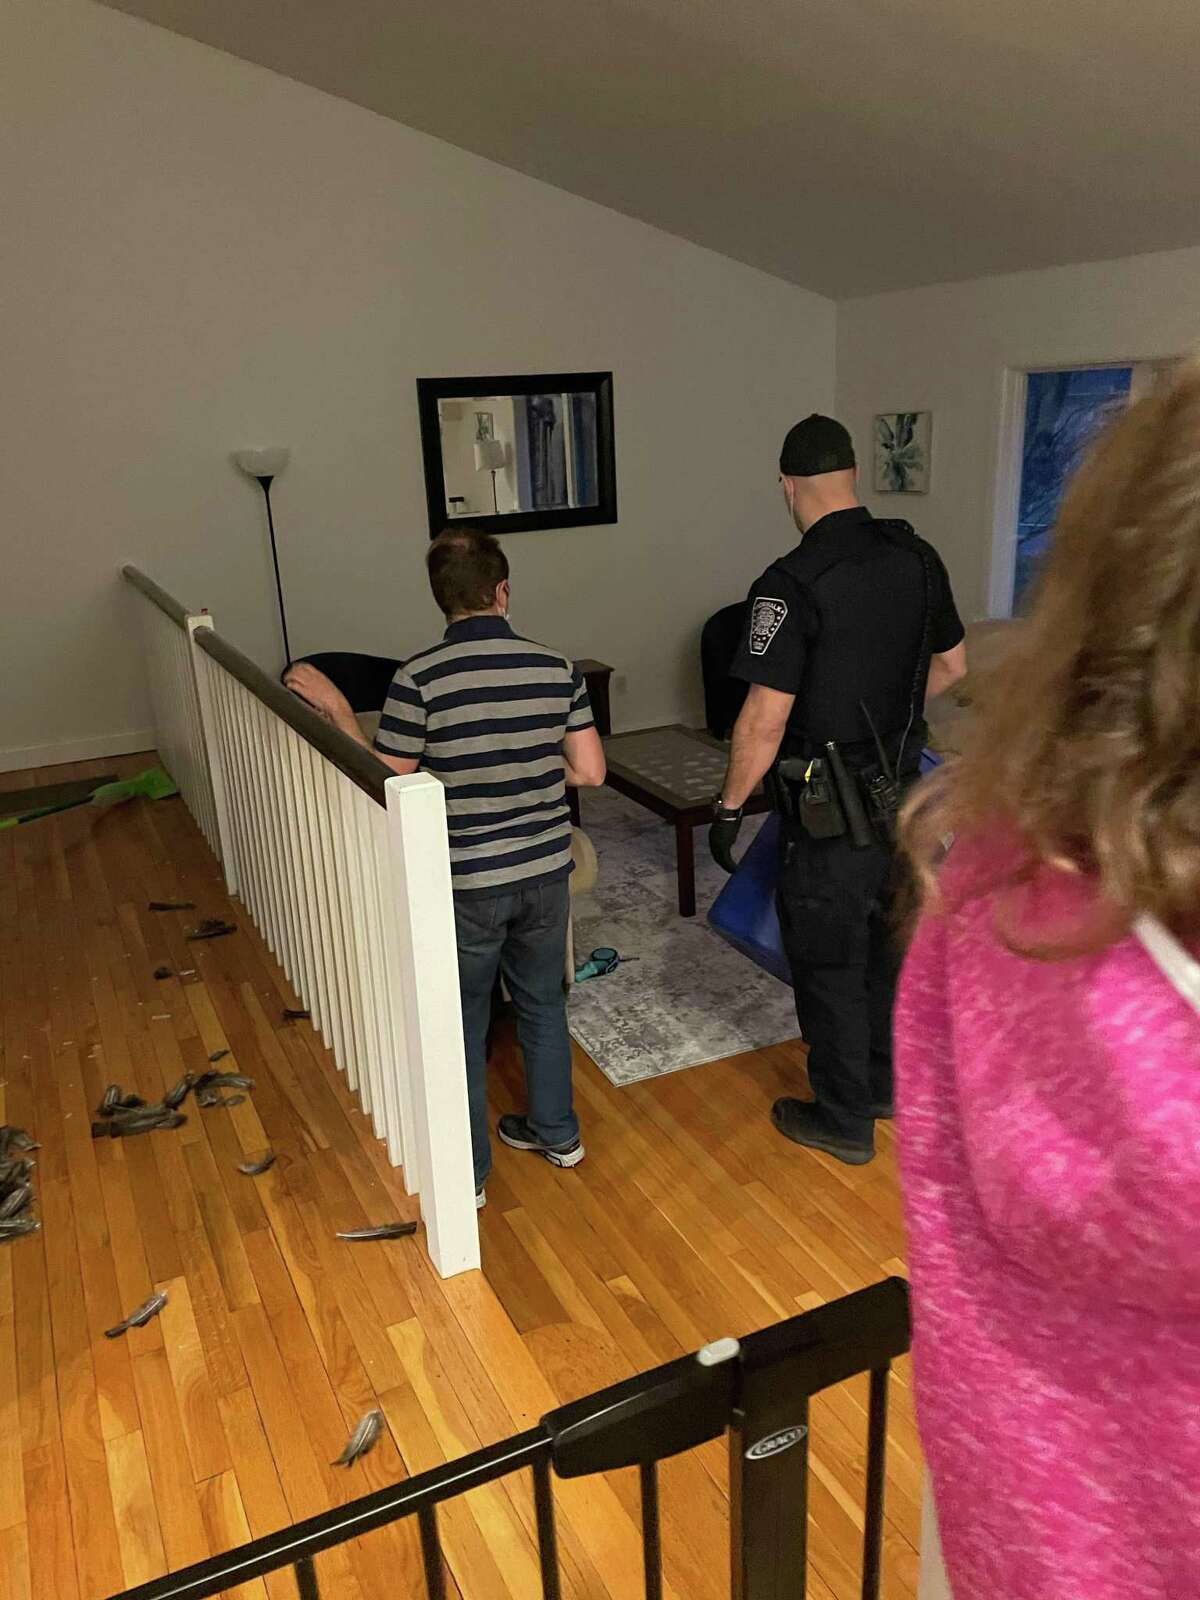 Norwalk Police Officer Andrew Roncinske helps Norwalk resident Jason Gonias remove a wild turkey, below right, from the Gonias' home on Mar. 26. Below left, the wild turkey crashed through the dining room window.